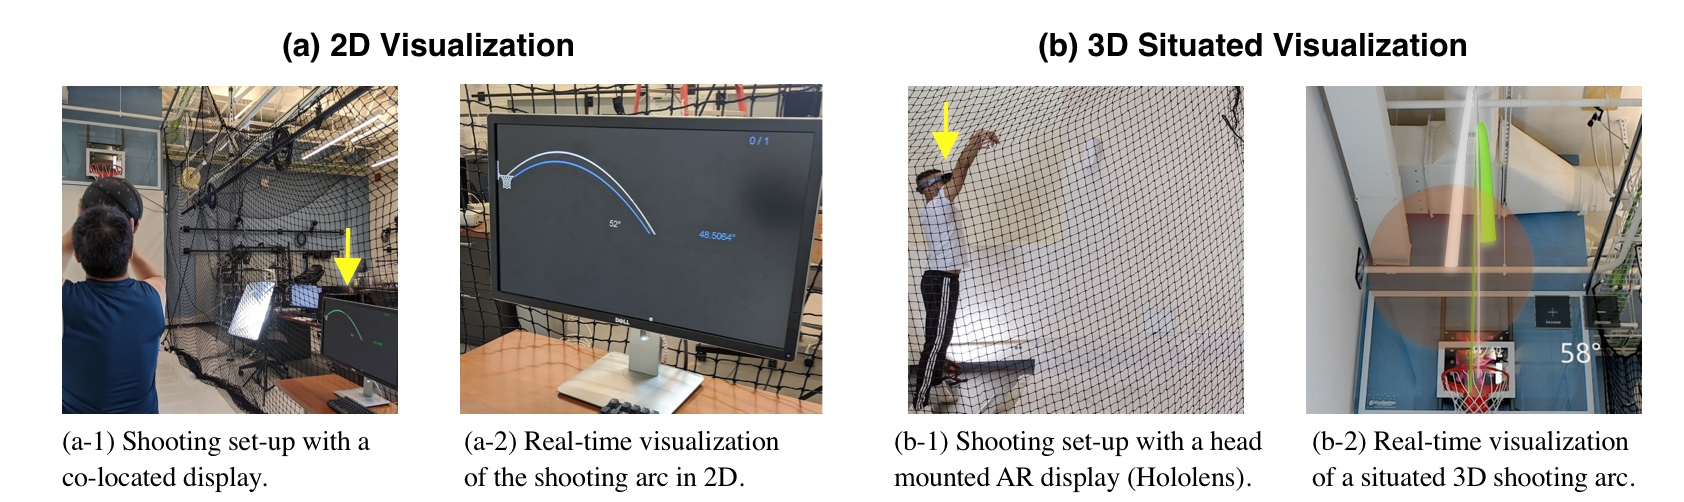 Towards an Understanding of Situated AR Visualization for Basketball Free-Throw Training